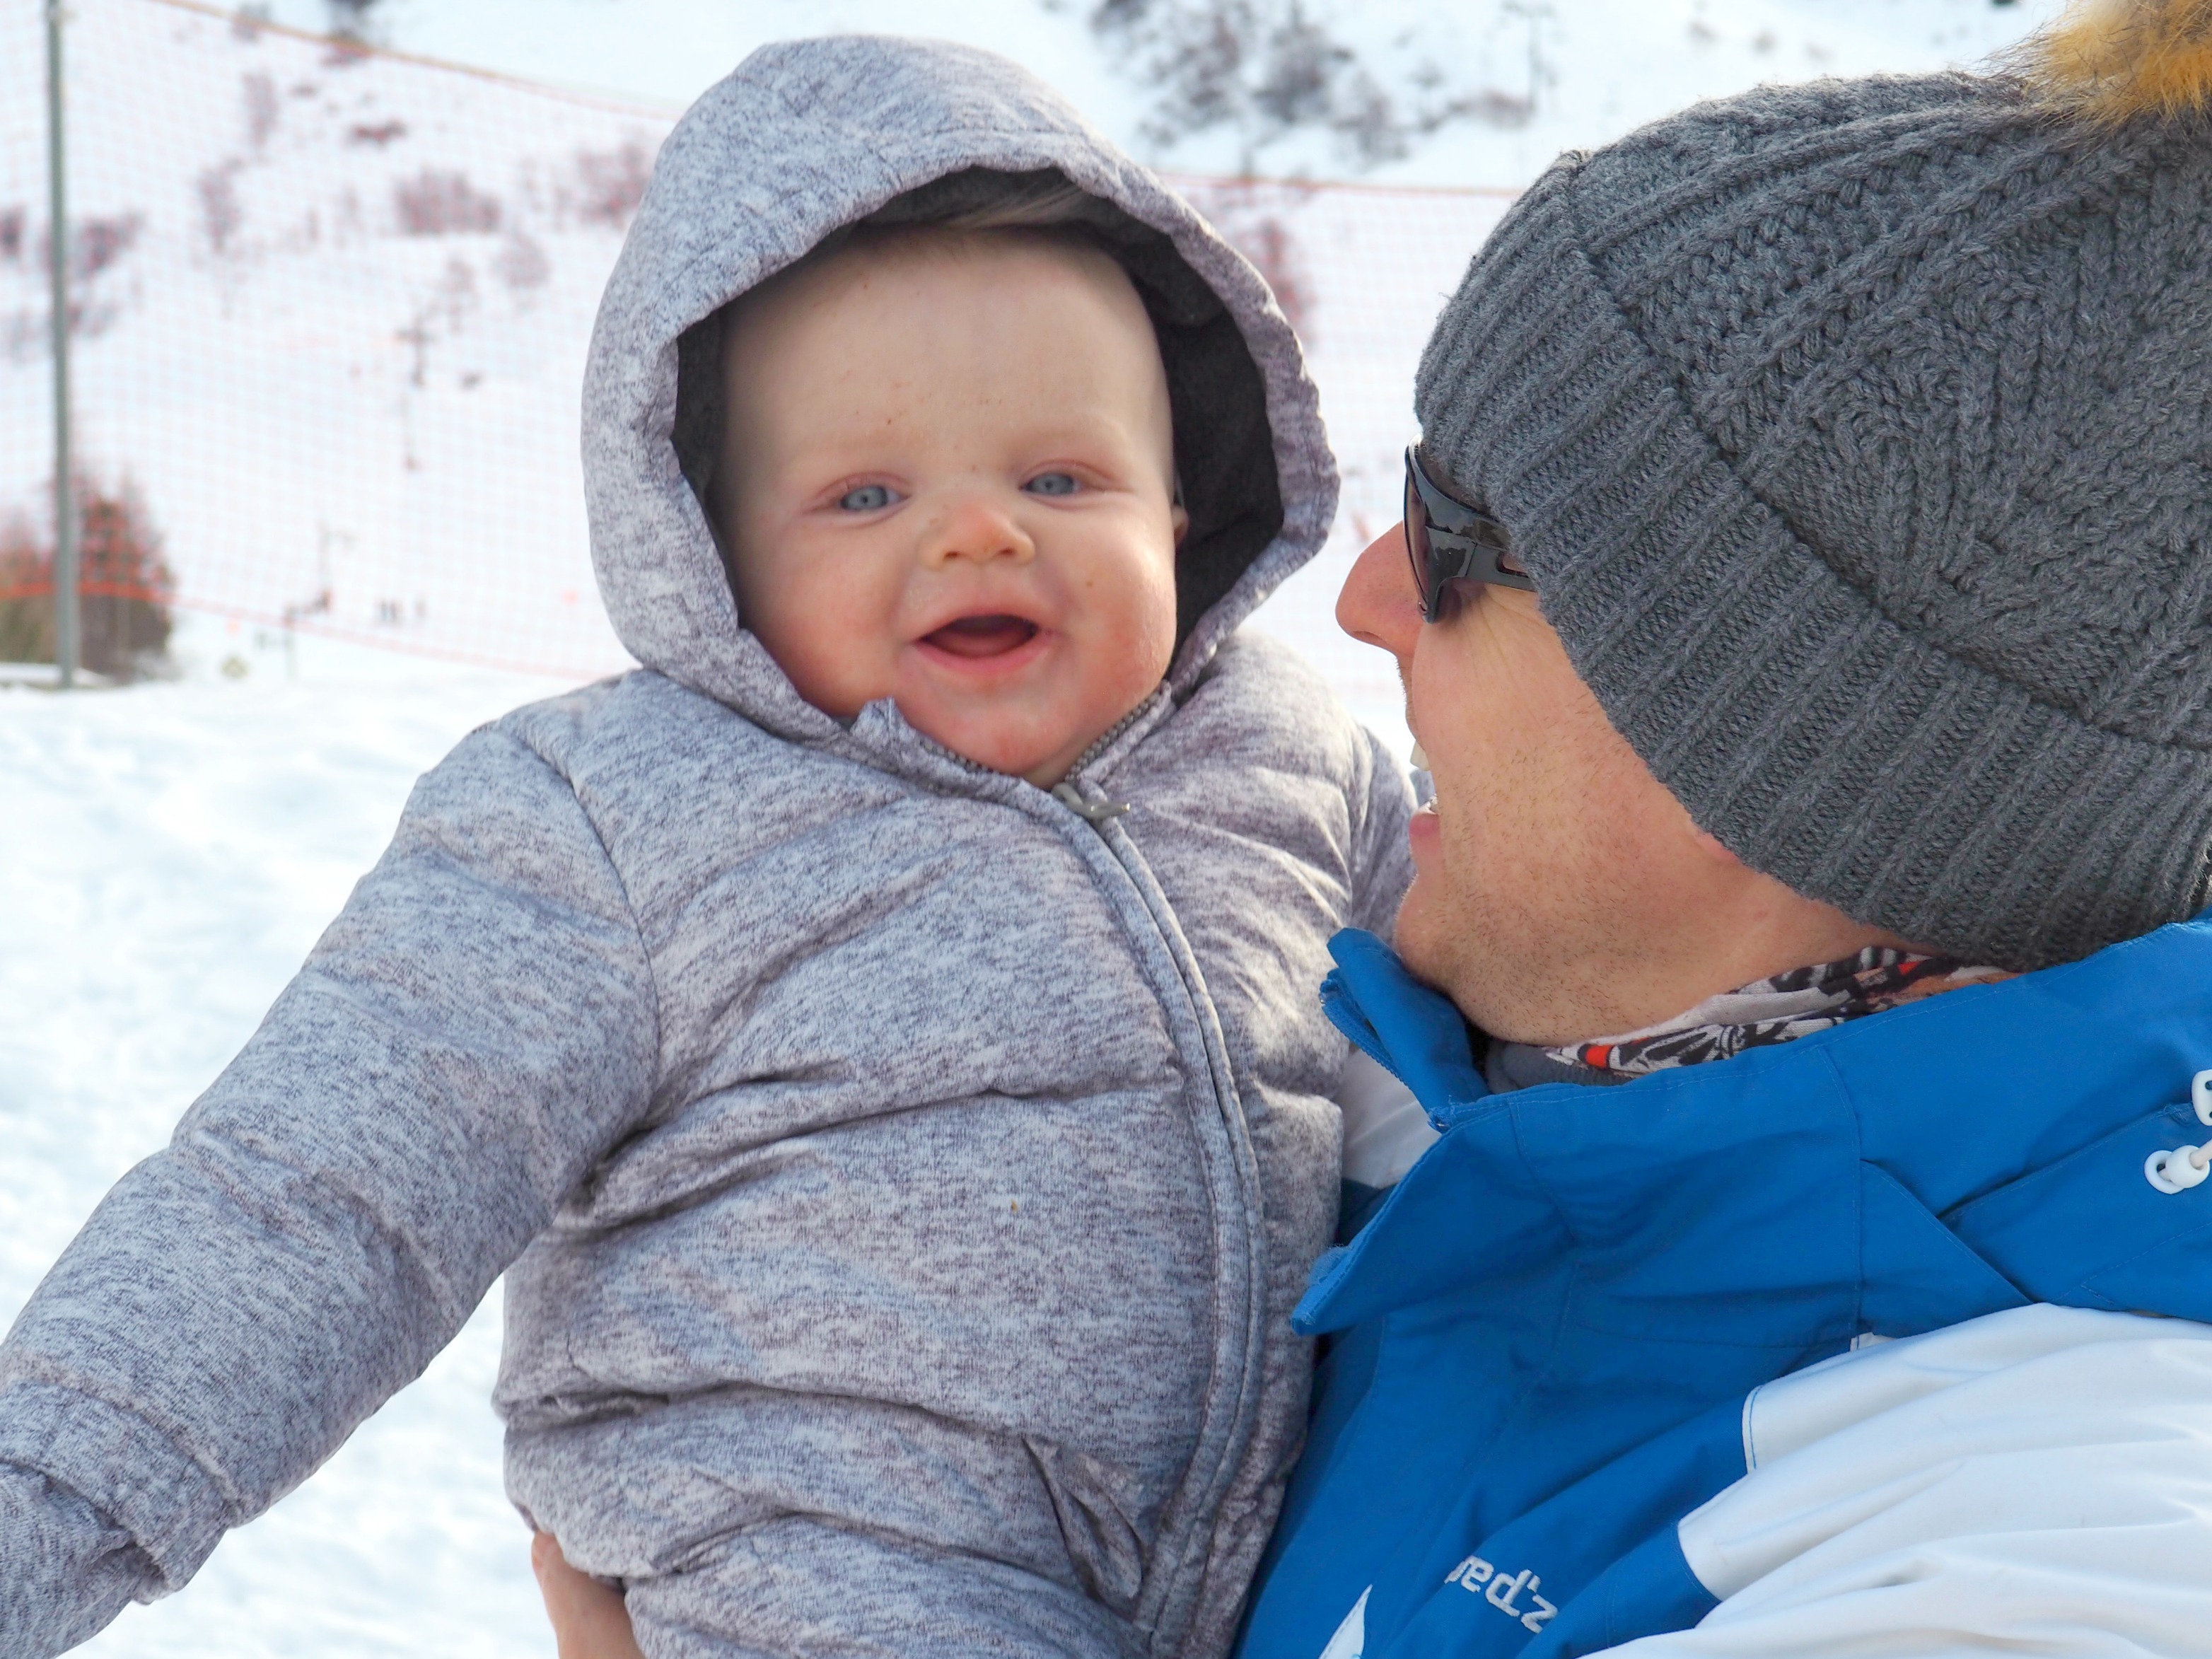 How to have a successful skiing holiday with a baby